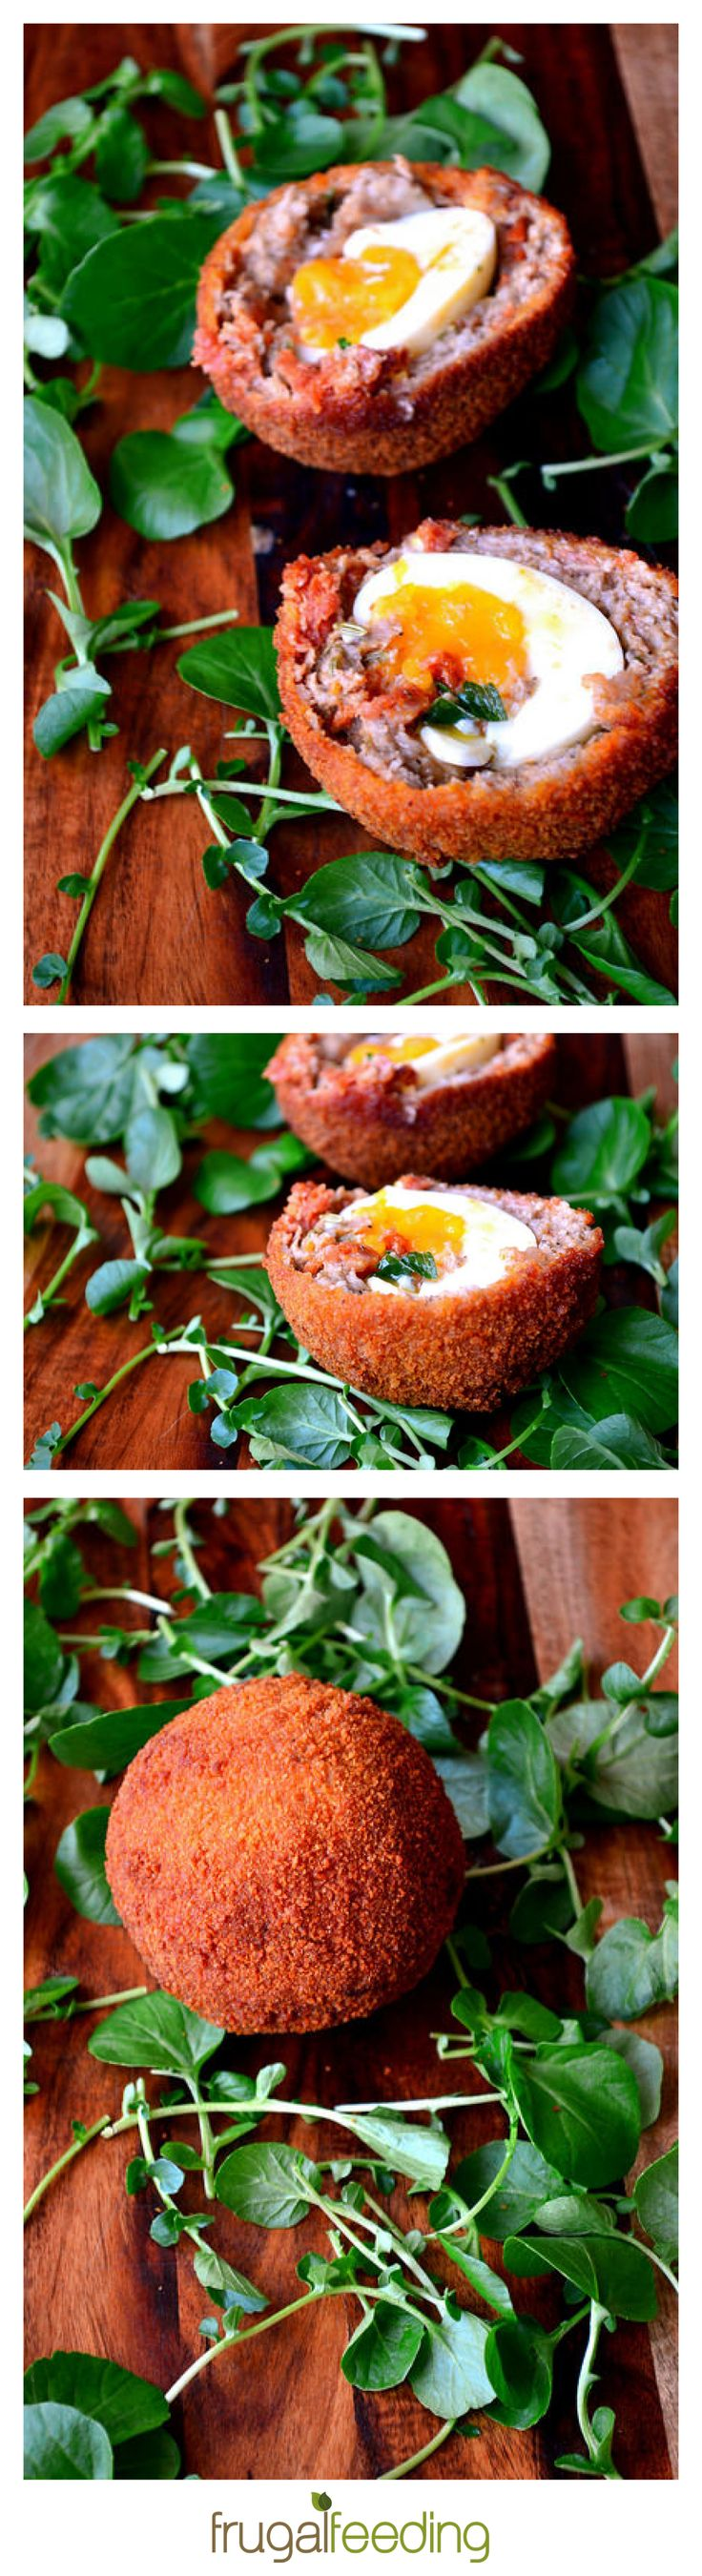 Chorizo and Fennel Scotch Eggs – Admit it; you've always wanted to make your own homemade scotch eggs. Flavoured with paprika-infused chorizo and a hint of fennel, these may be the best you've ever tasted. The most important bit? A perfectly cooked egg; cooked to perfection for a golden centre.